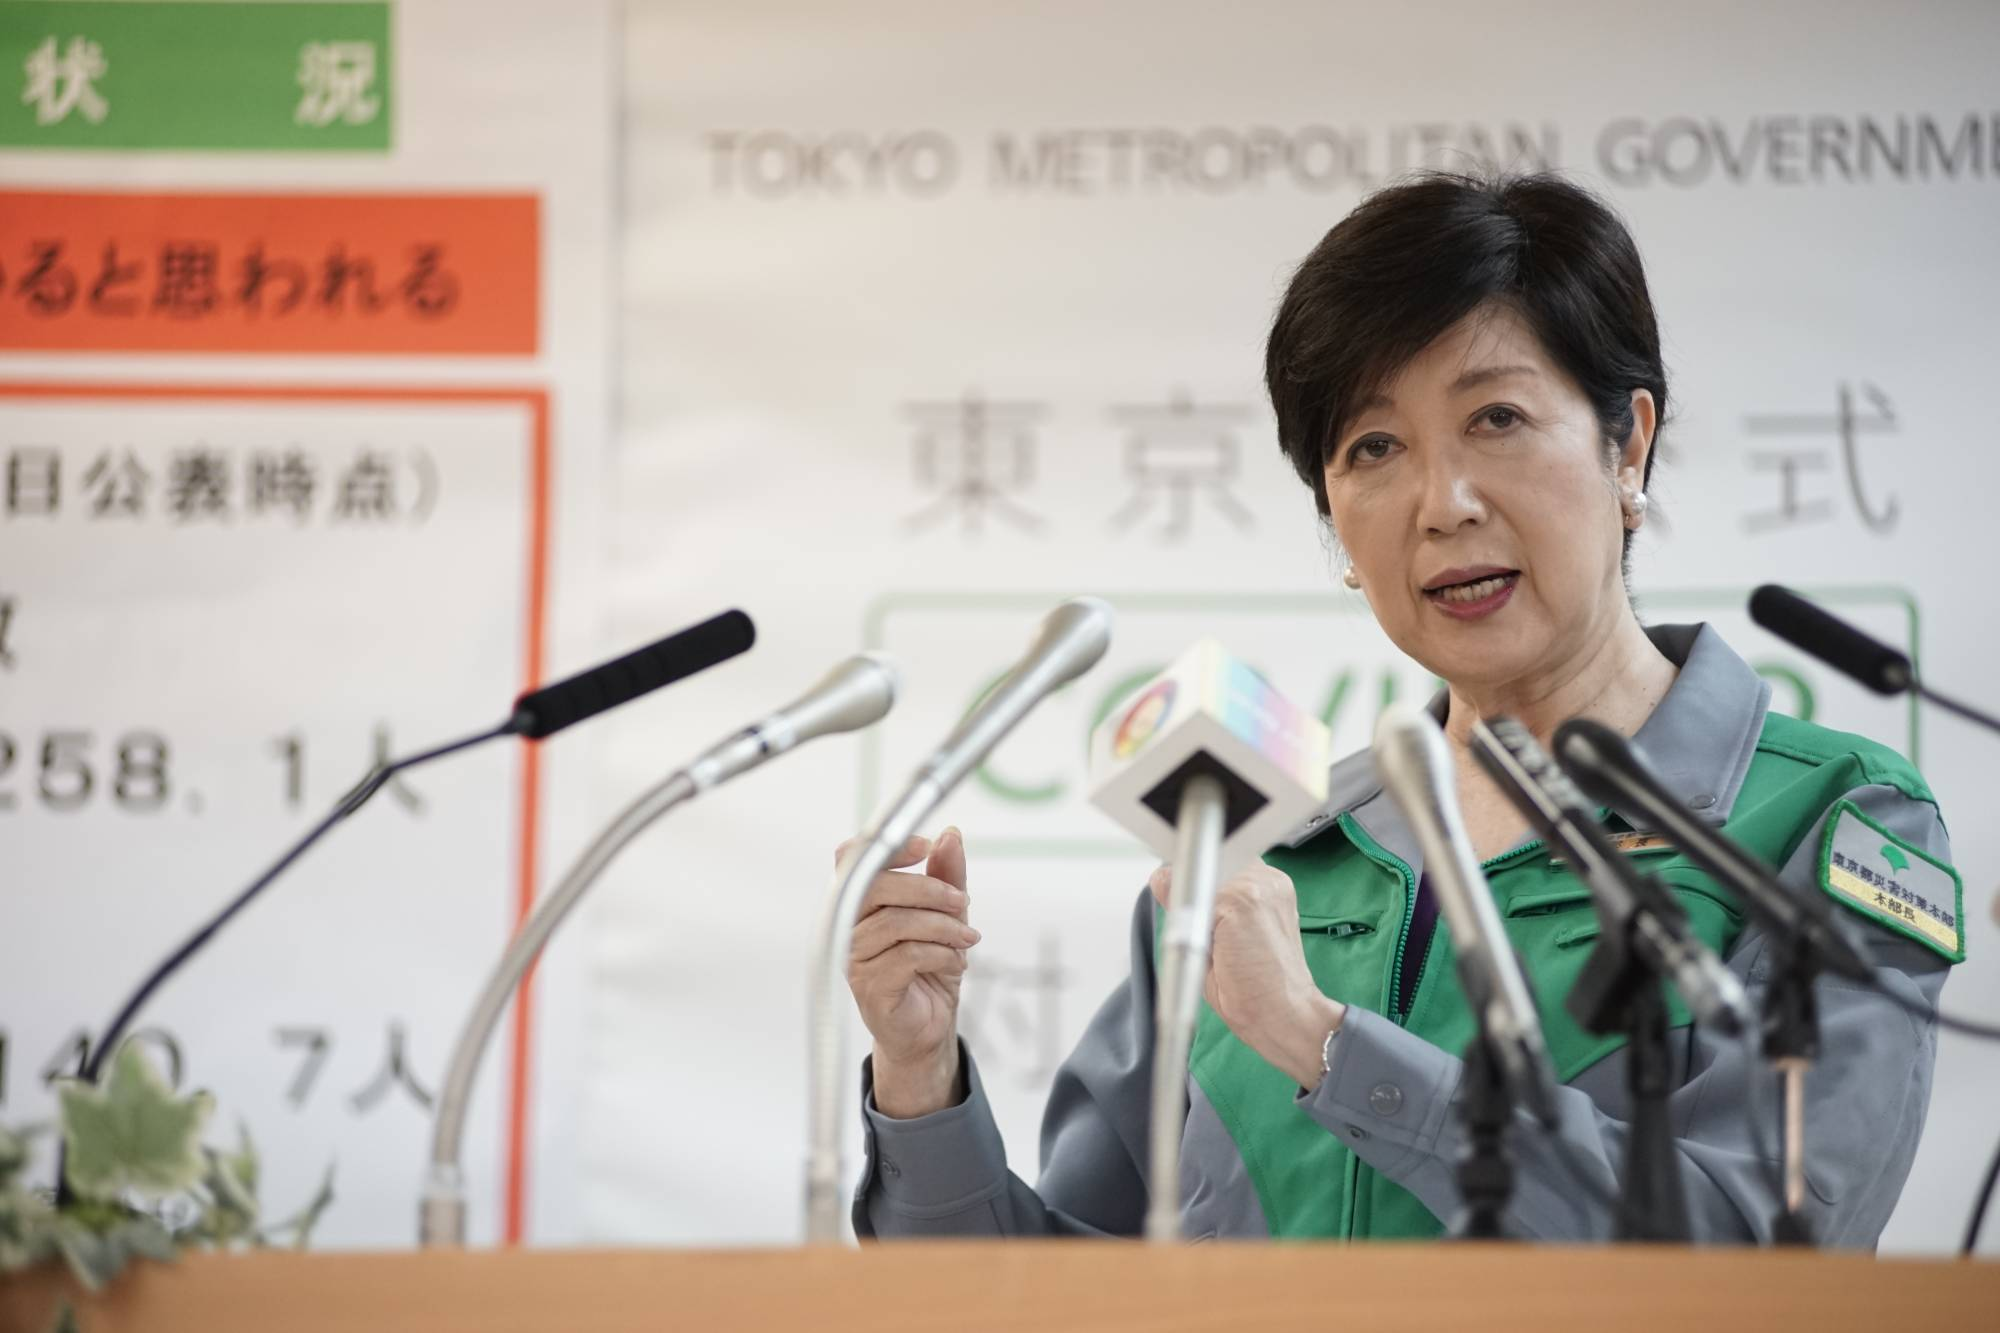 Tokyo Gov. Yuriko Koike talks about the possibility of declaring another state of emergency if the coronavirus continues to spread, at a news conference Friday in Tokyo. | RYUSEI TAKAHASHI